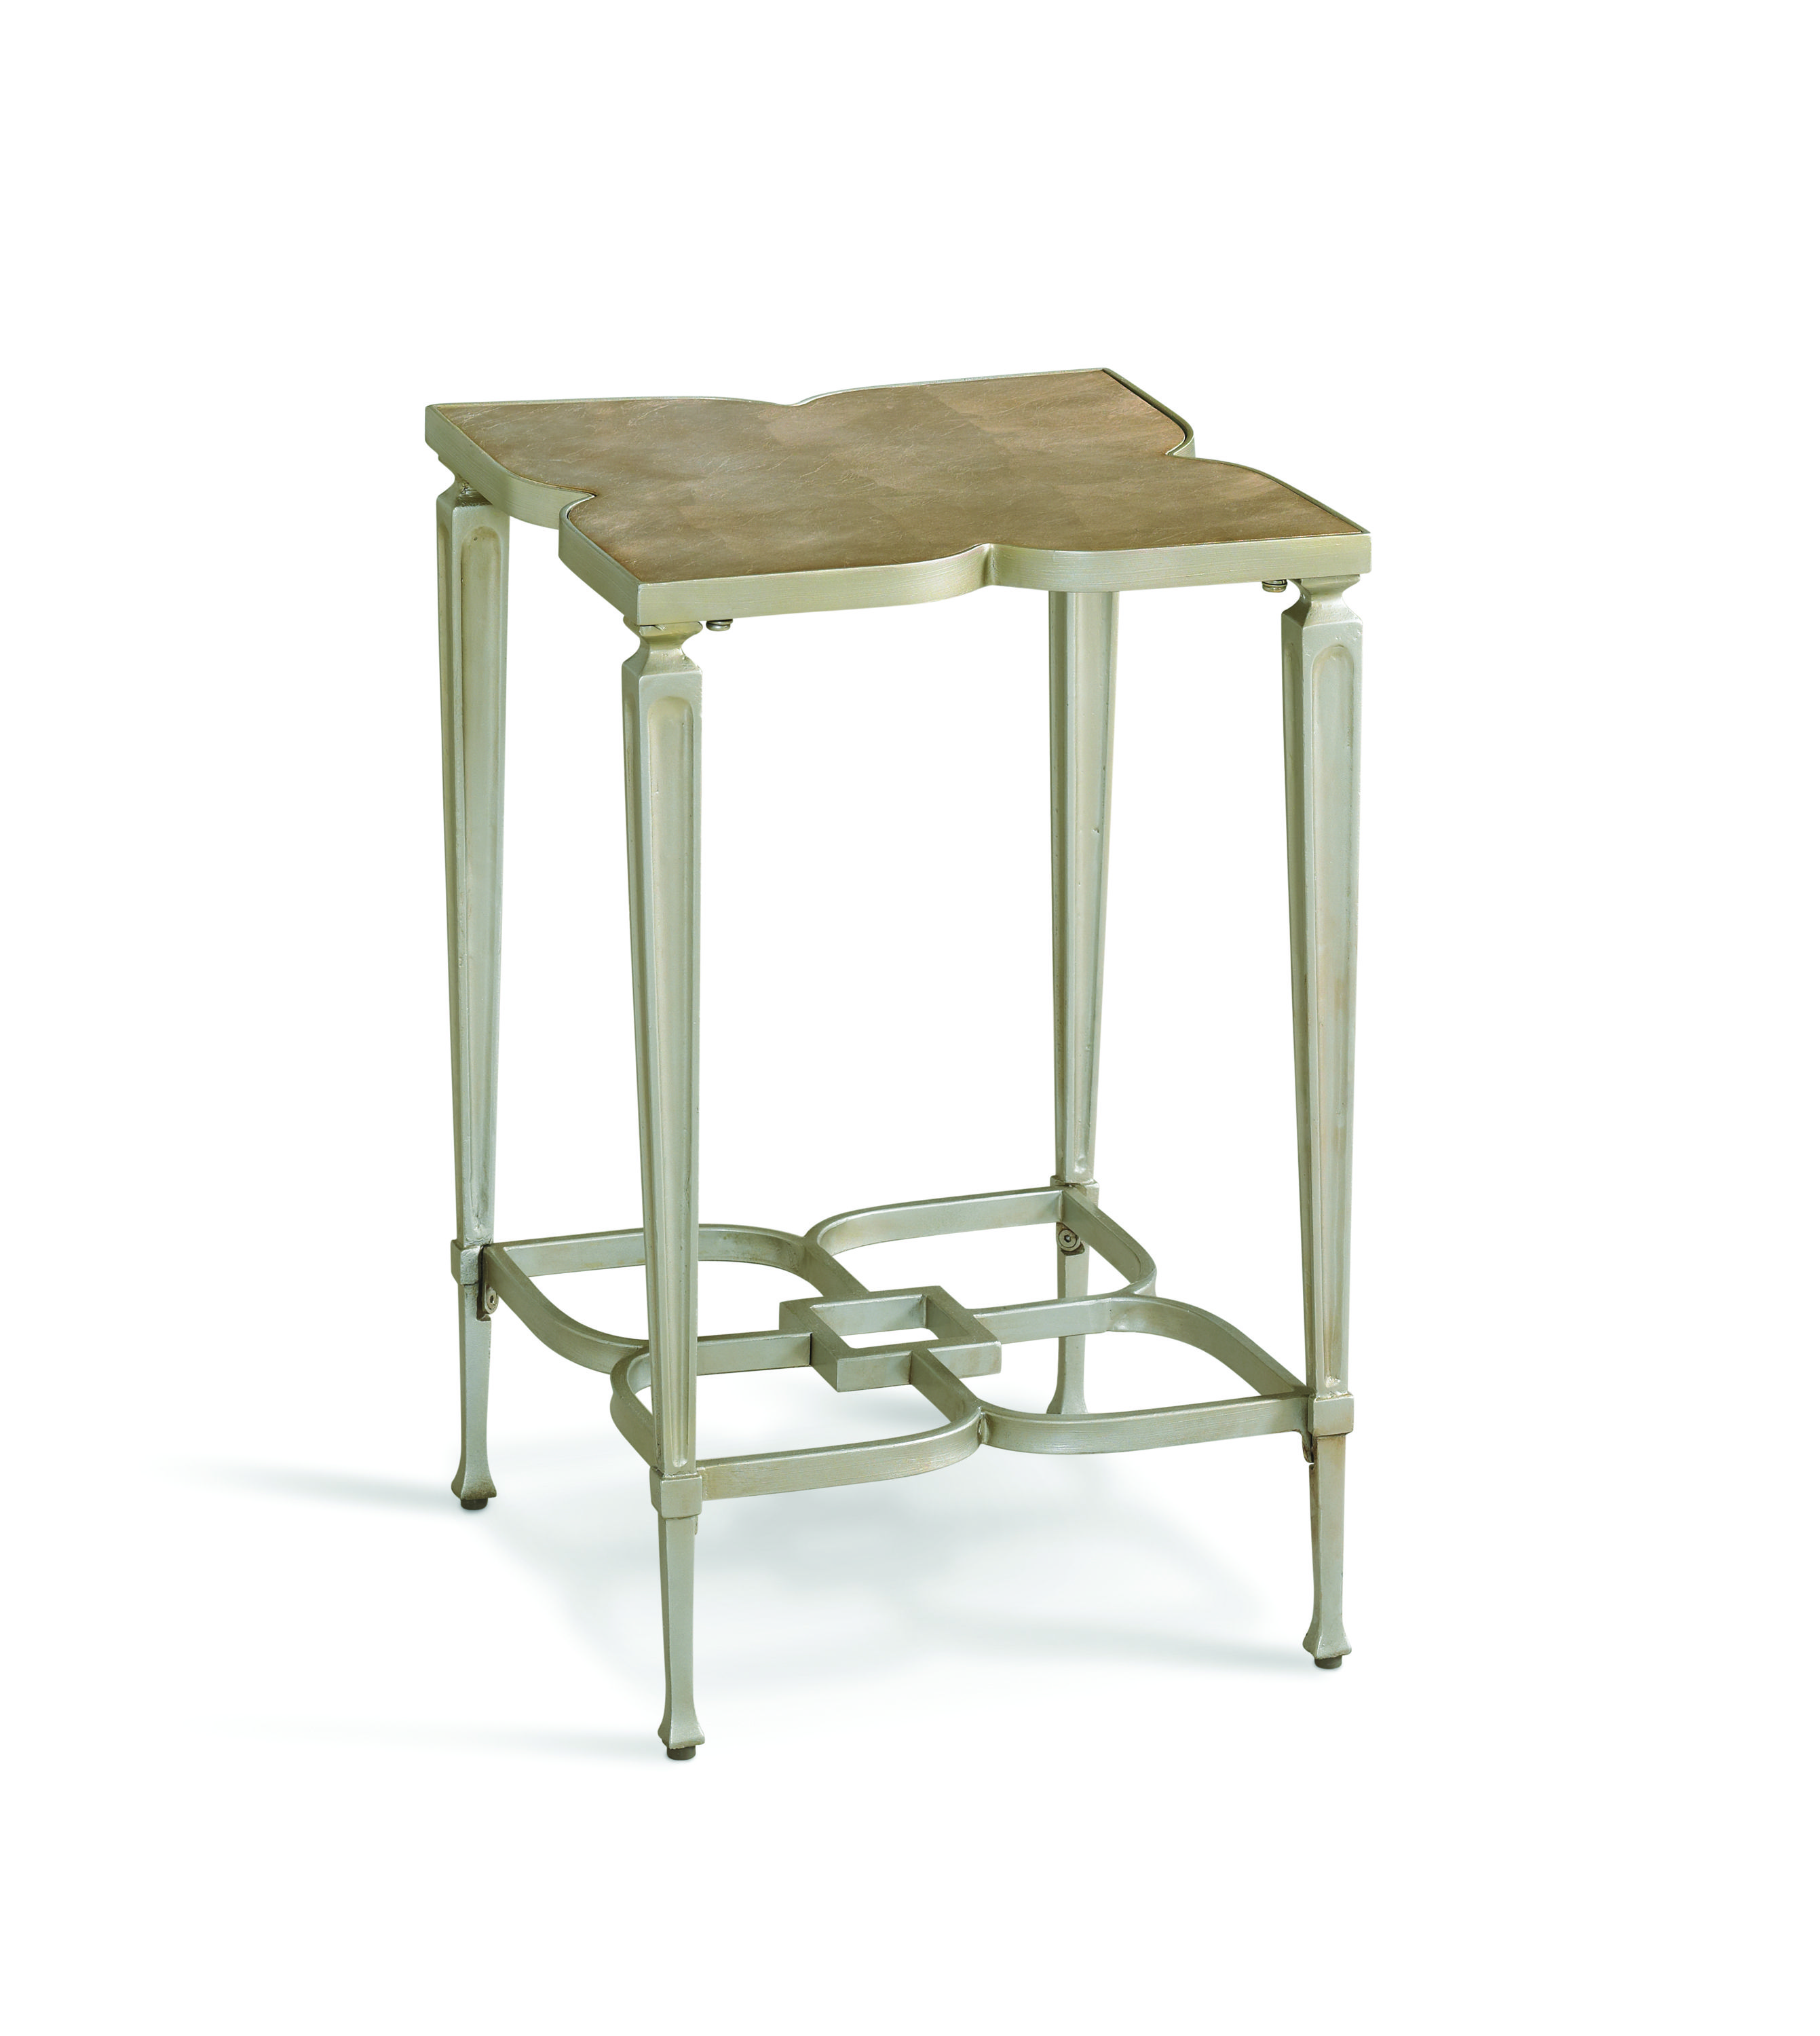 caracole lucky charm accent table features signature warm tables edmonton silver gold metal finish and wood top painted taupe leaf live edge patio side large nightstands elm